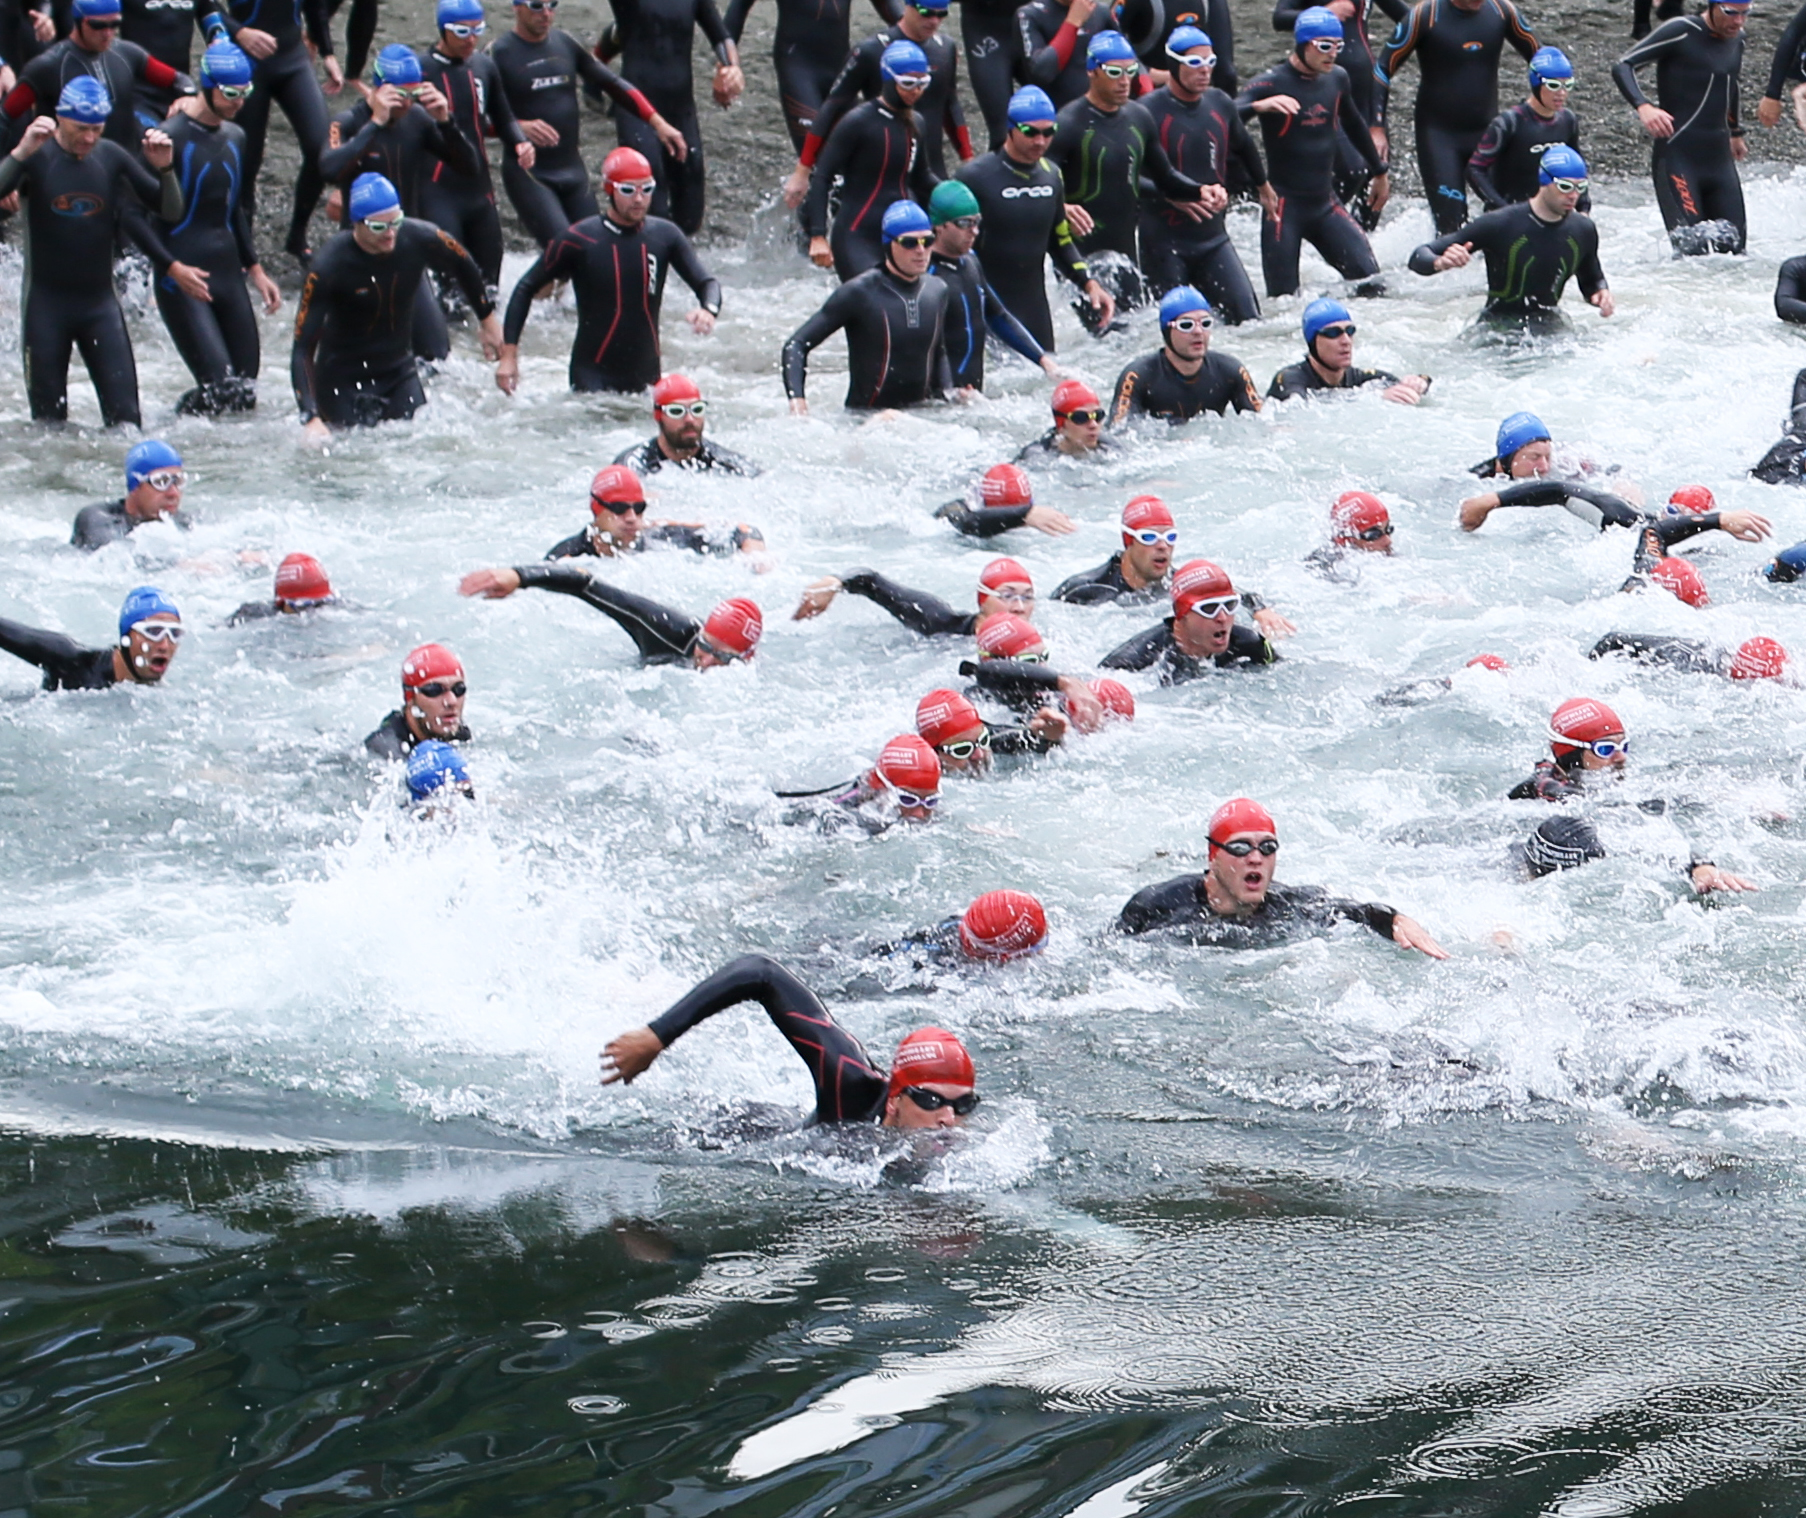 I am the guy in front, head up, focused on swimming ASAP out of the bay. You can see clearly everyone else is struggling in the 'washing machine'. My tactics staying far right really helped me quickly catch up with swim leaders